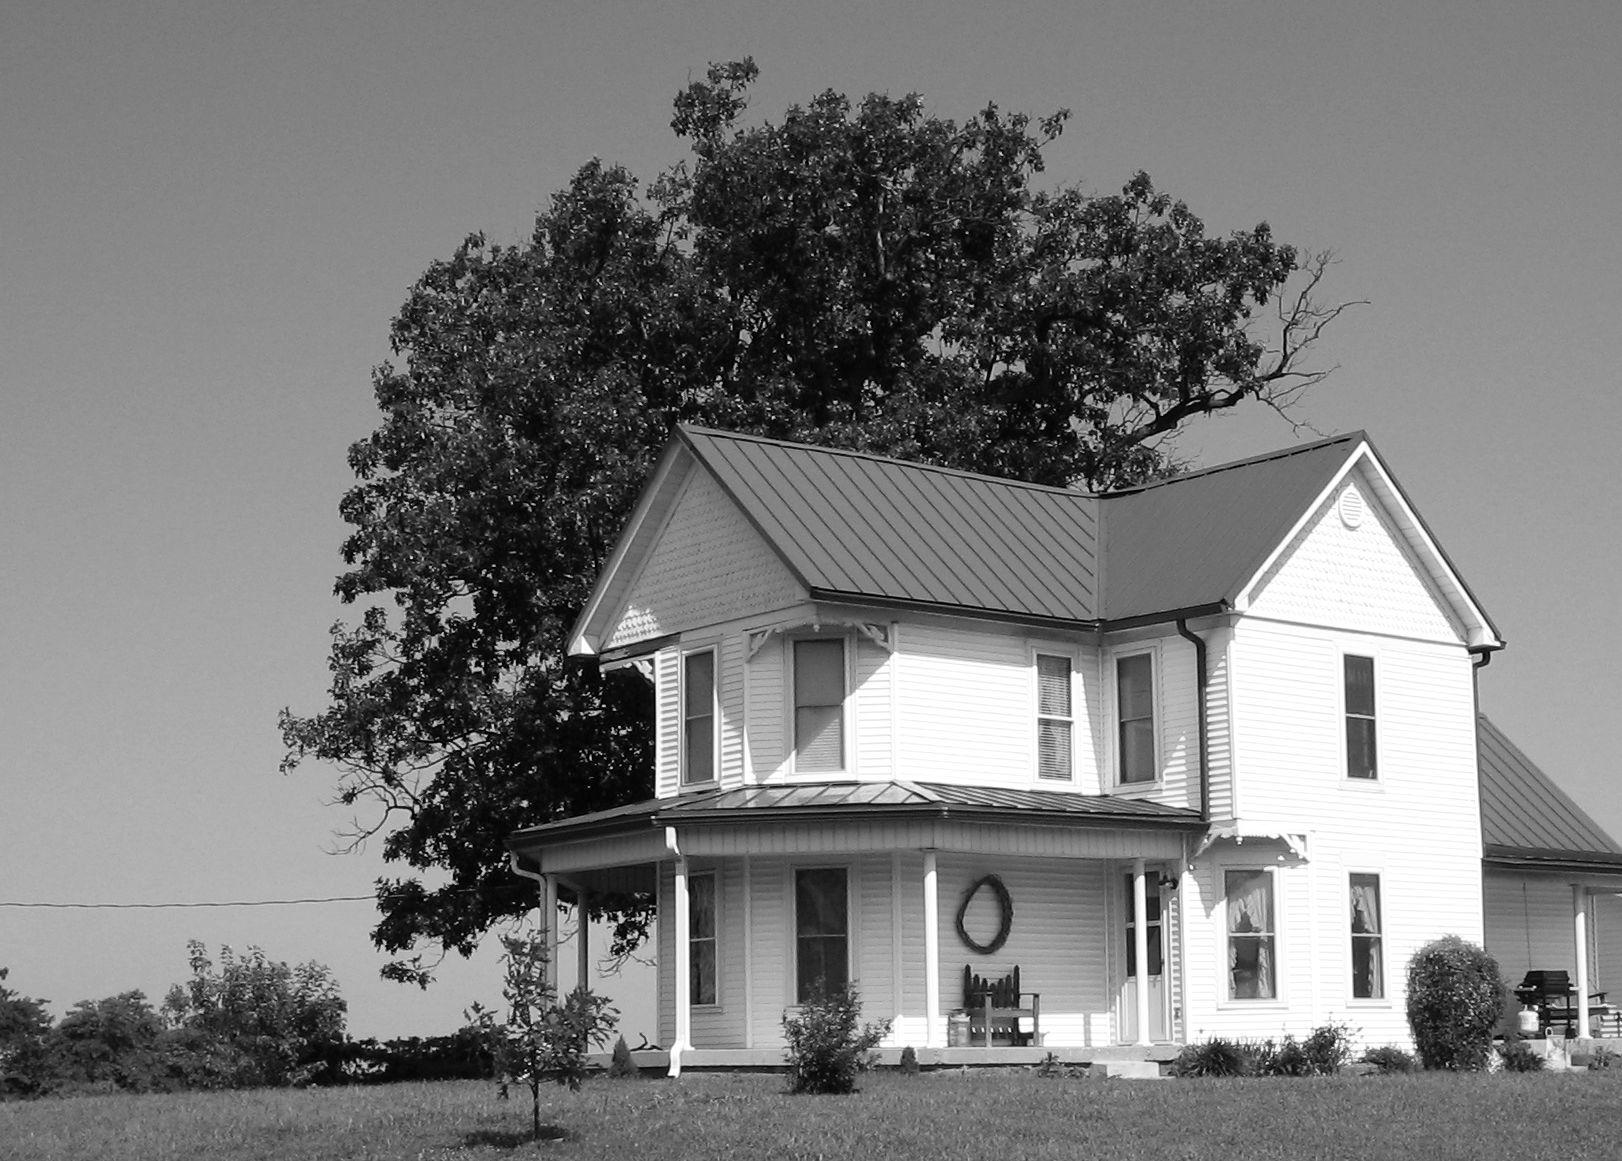 houses black and white. farm house black and white by uncledave houses black and white u